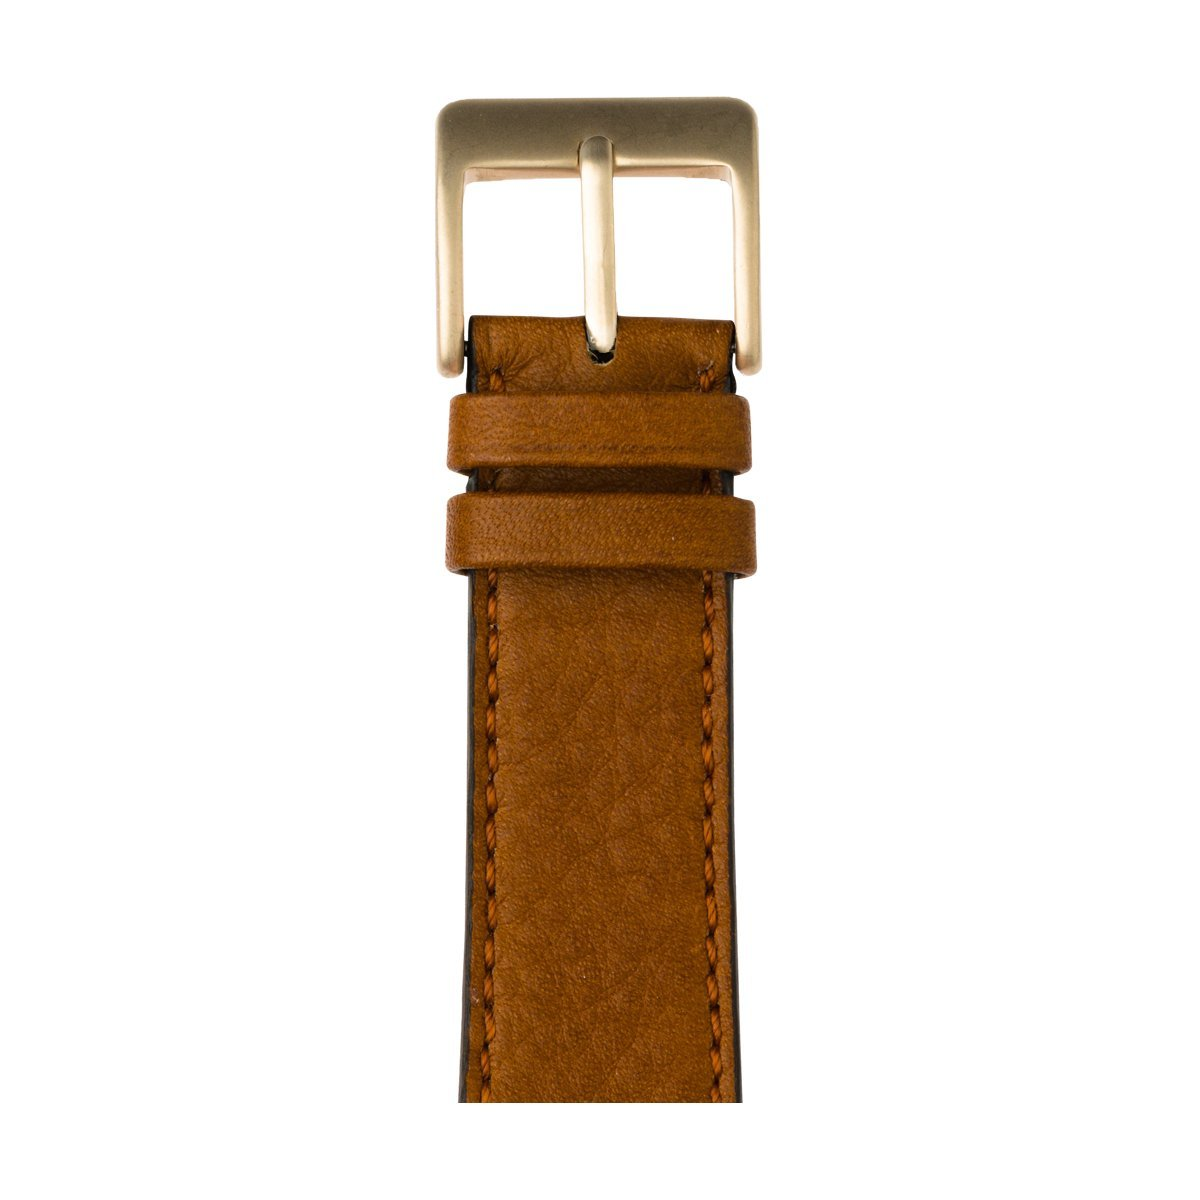 Roobaya | Premium Sauvage Leather Apple Watch Band in Cognac | Includes Adapters matching the Color of the Apple Watch, Case Color:Gold Aluminum, Size:38 mm